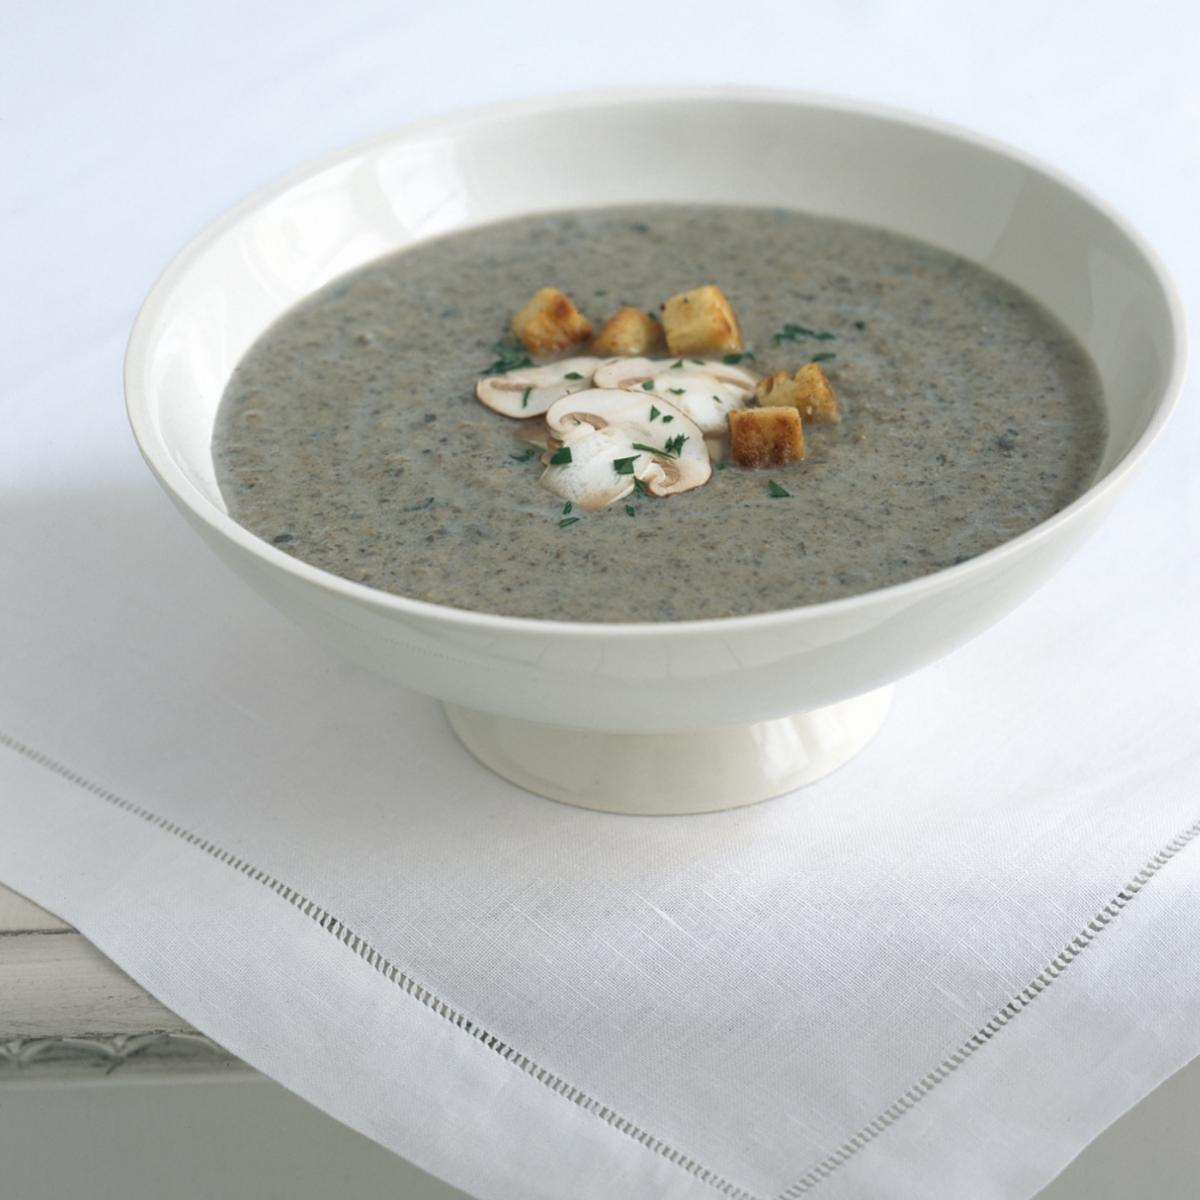 A picture of Delia's Wild Mushroom and Walnut Soup recipe